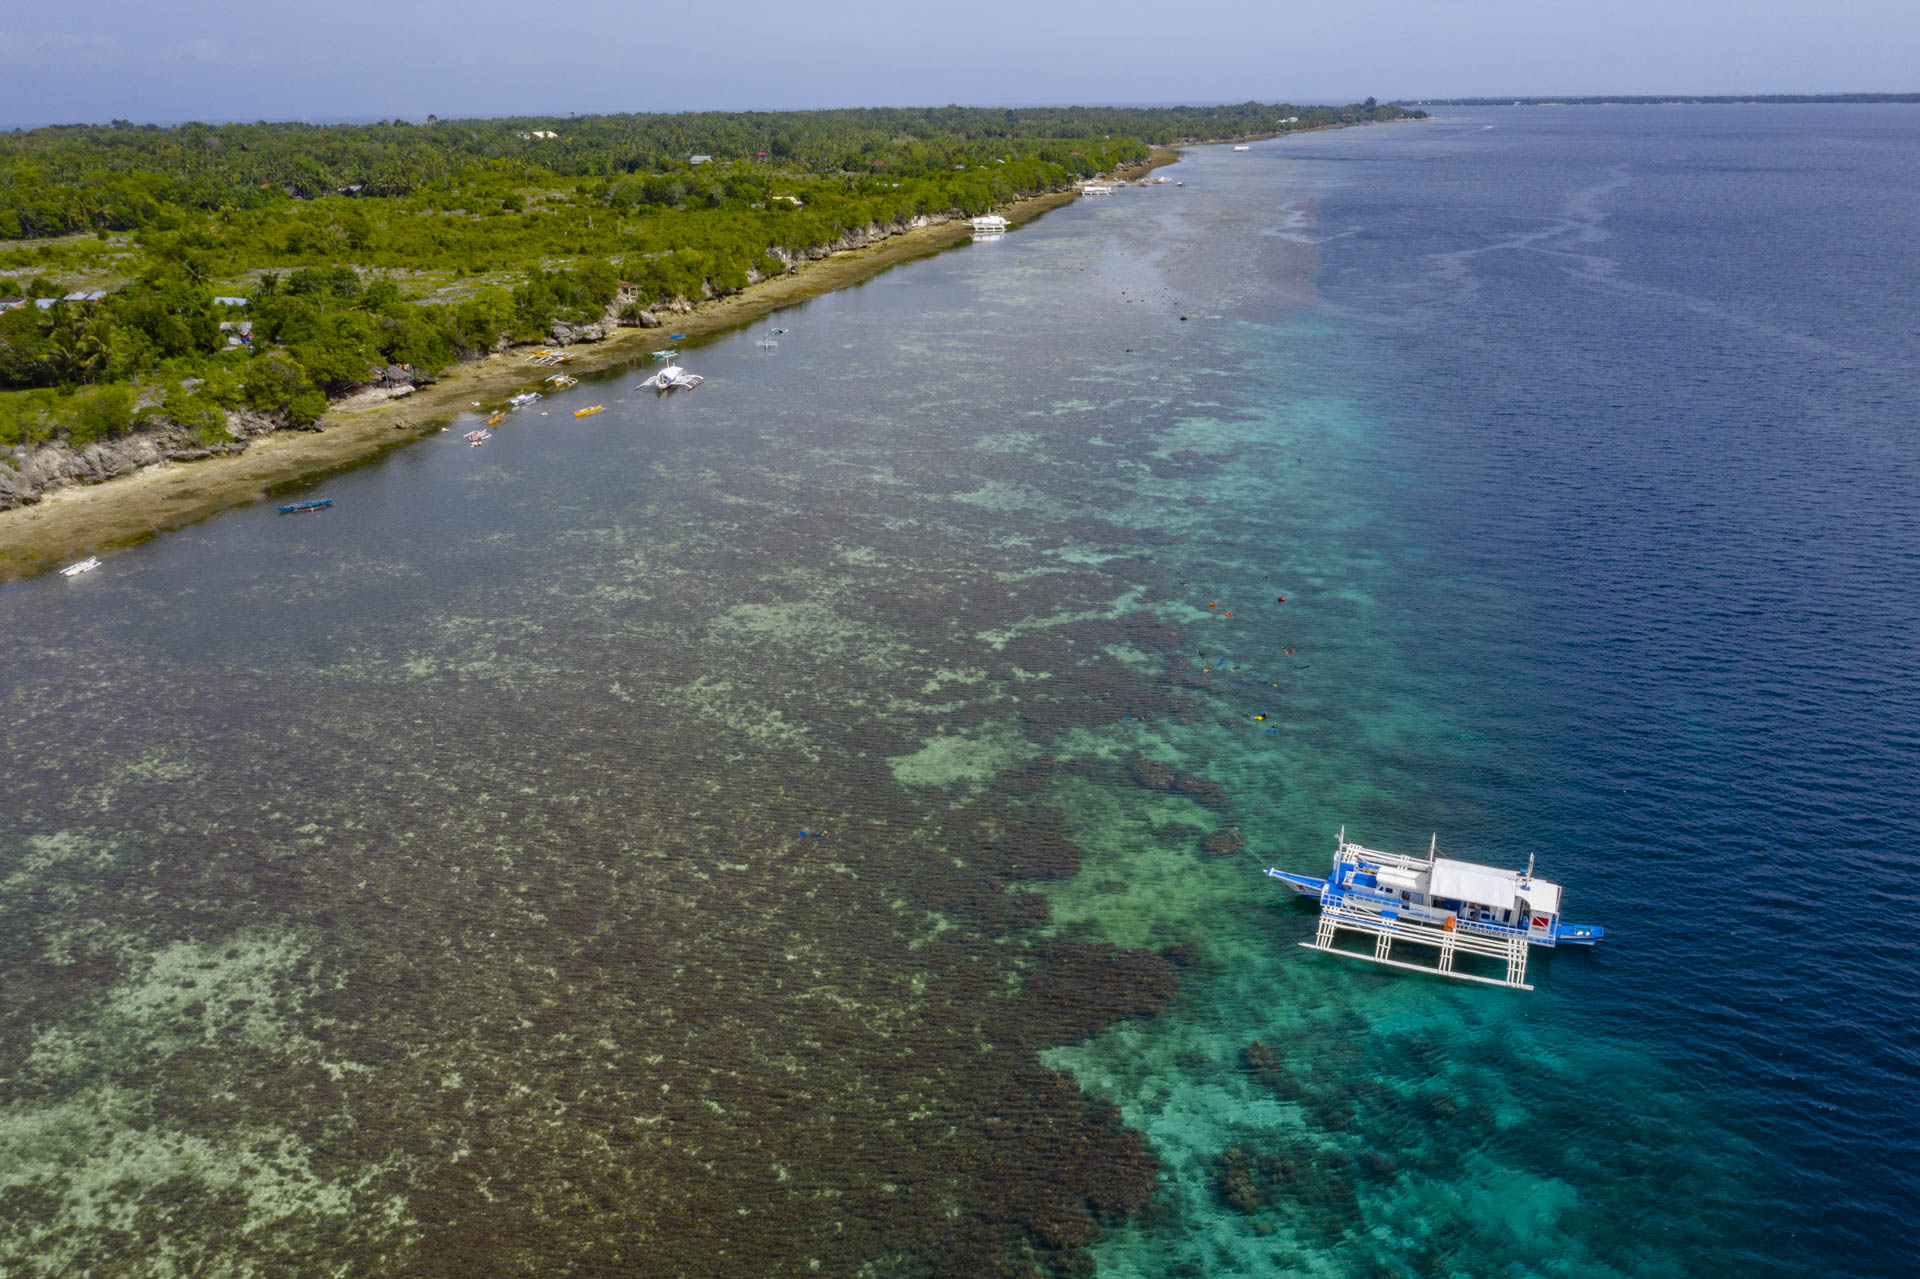 Aerial view of coral reef and local Philippine boat